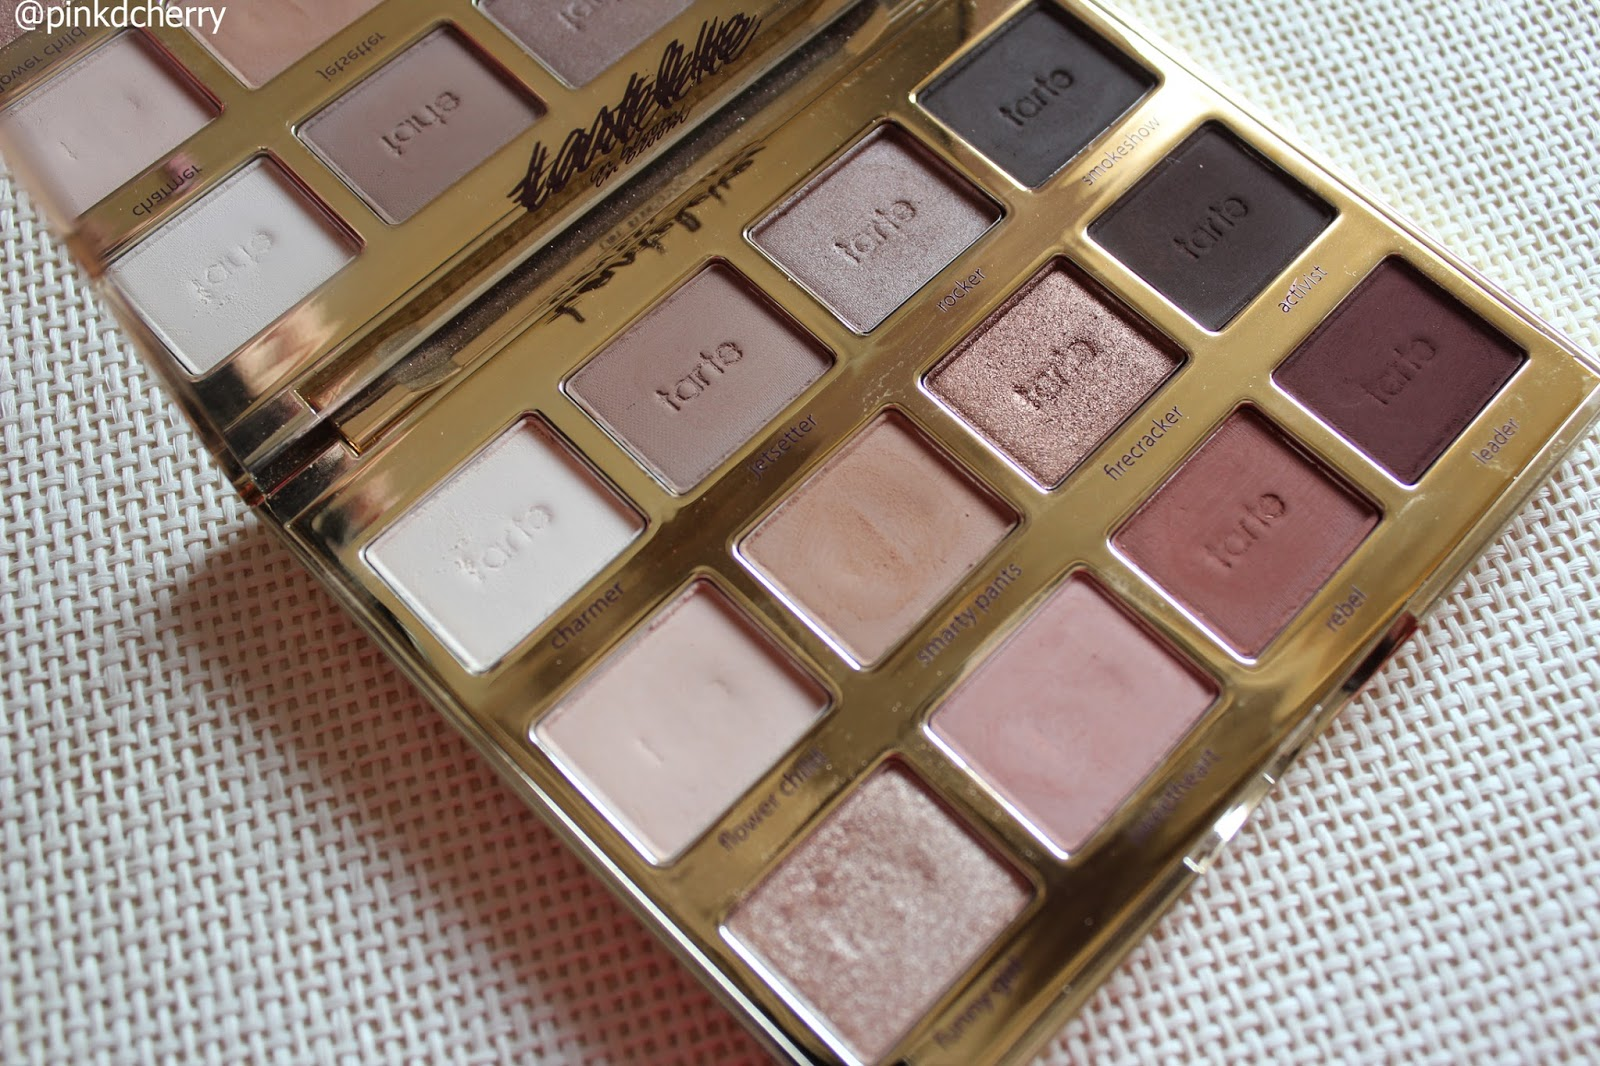 Tartalette in bloom paleta de sombras